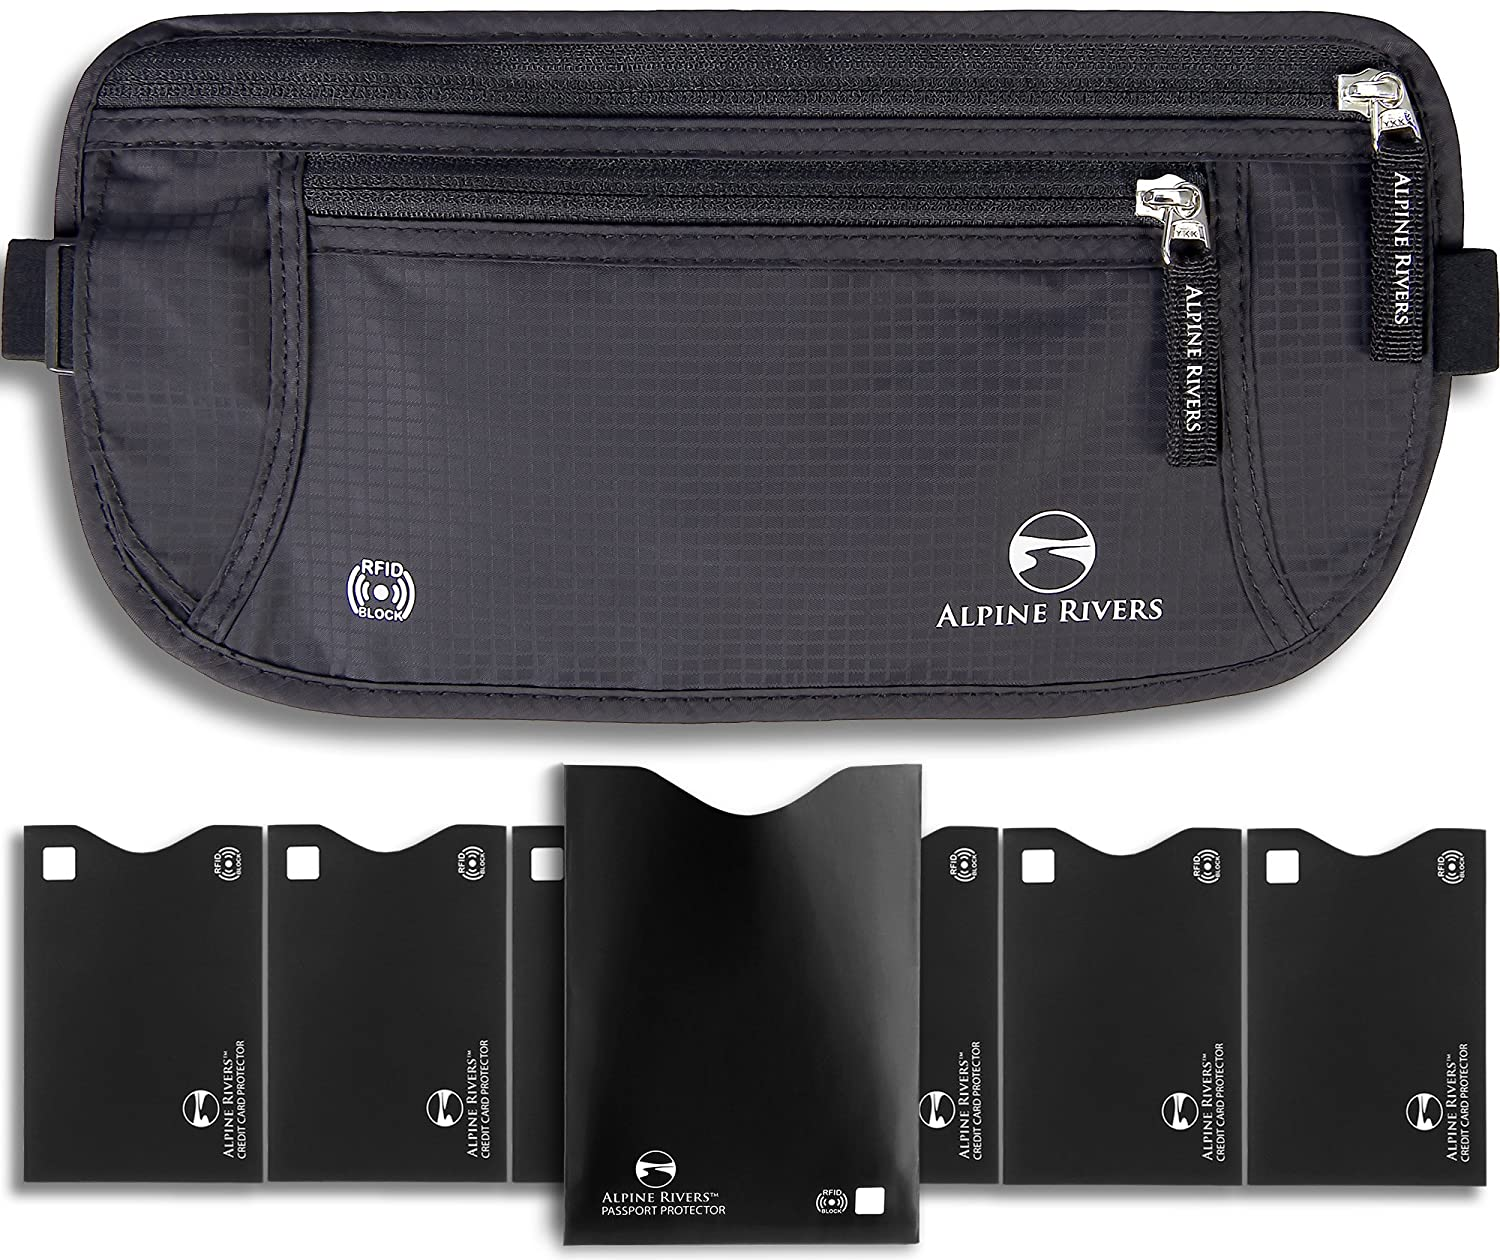 Money Belt for Travelling - Hidden Security Pouch for Cards and Passports -  High Quality RFID Waterproof Breathable Material - Protect your Cash and  Conceal ... 097ee8f6edba